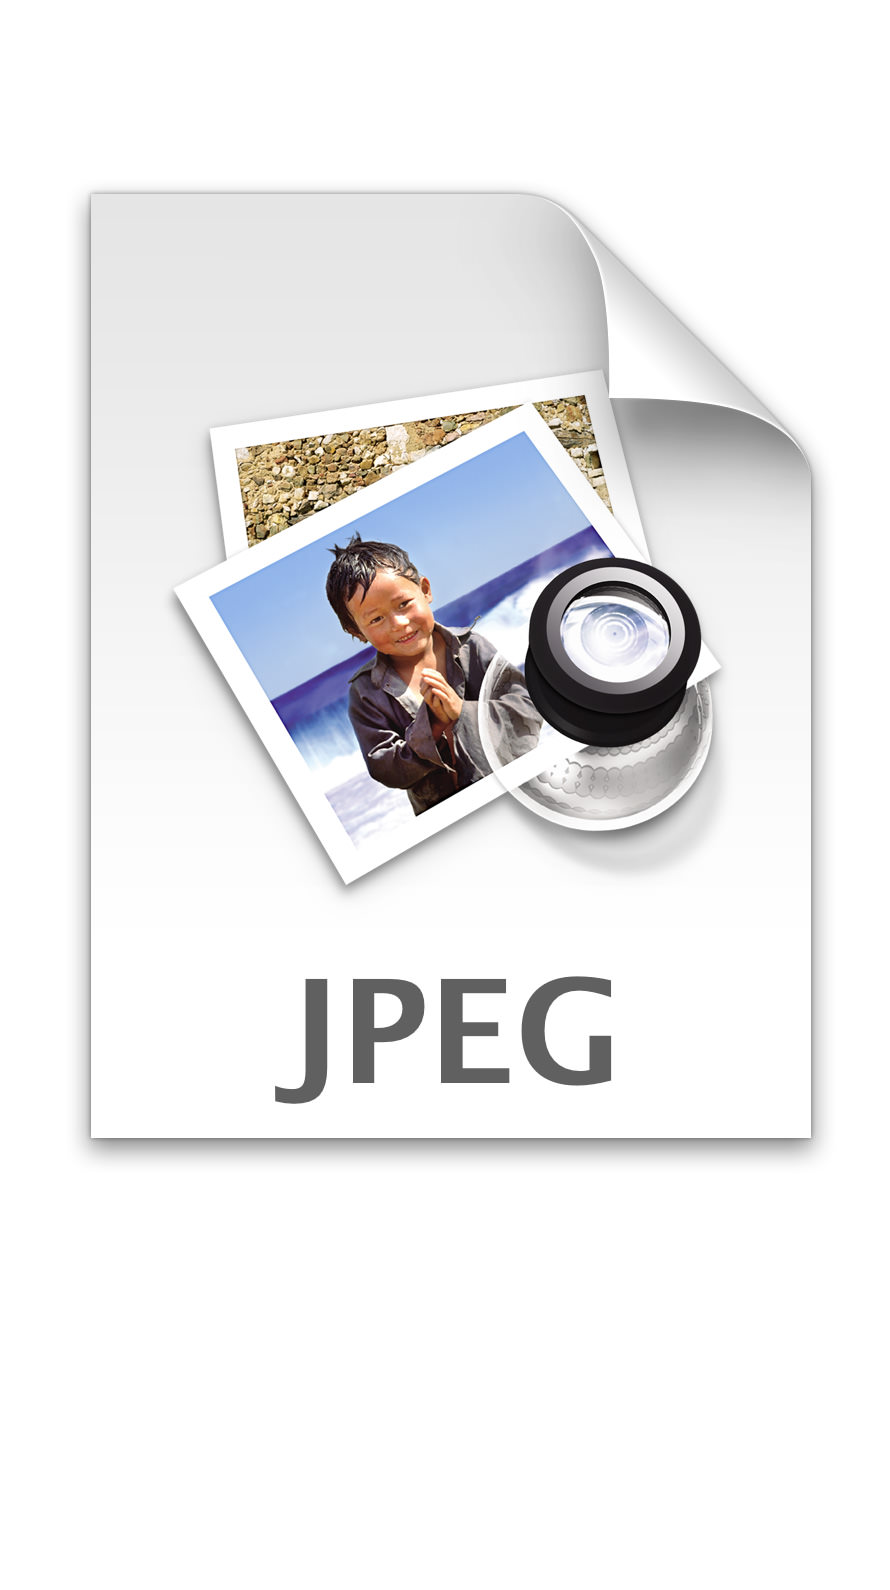 """JPEG""   The Internet has irrevocably changed all culture and cultural production and Contemporary Art.  Contemporary Art Now = Jpegs."